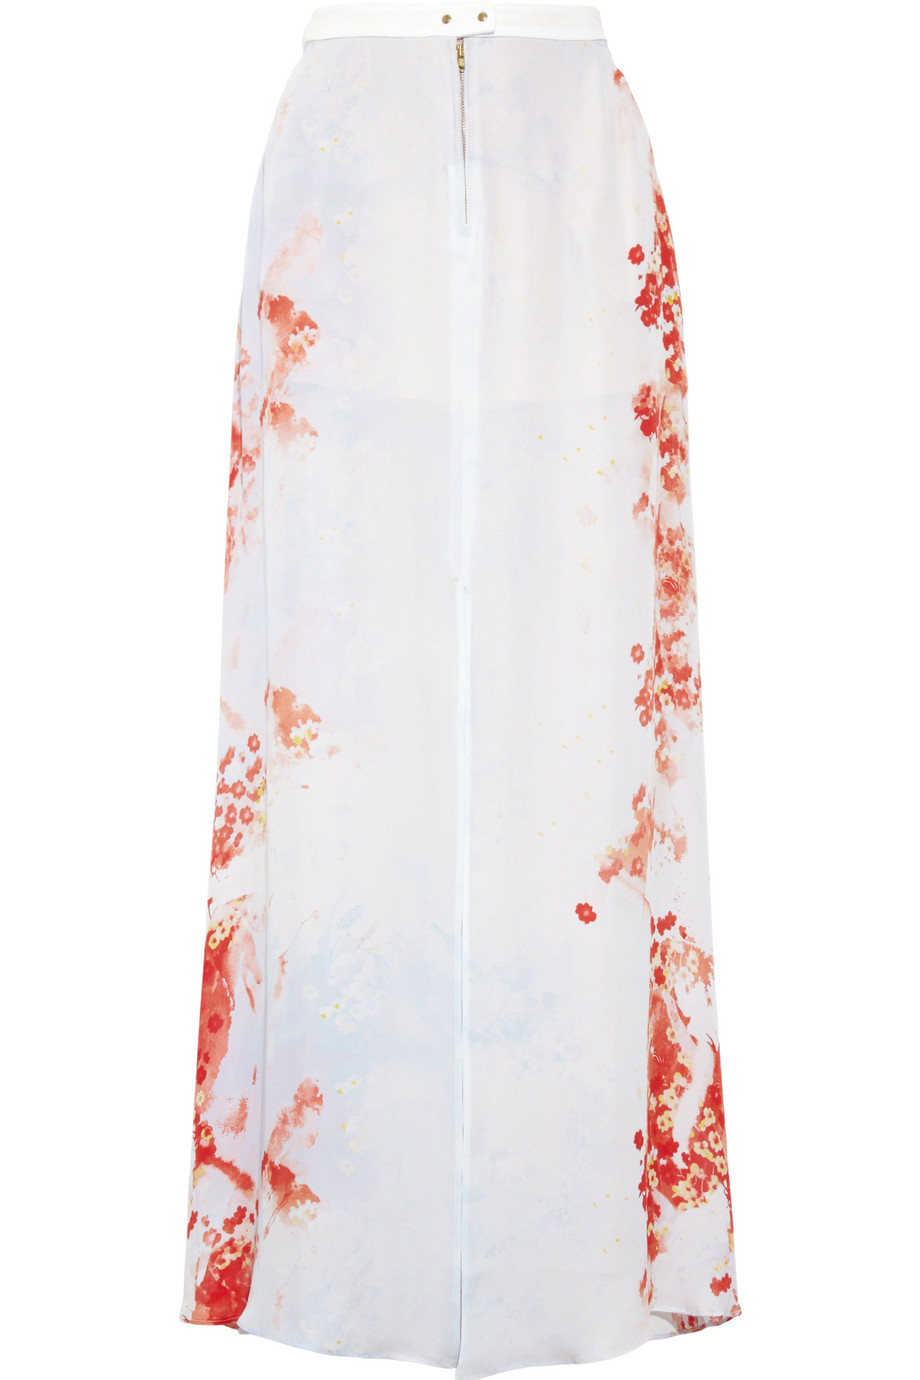 A.l.c. Allegra Floral Print Silk Georgette Maxi Skirt in Red | Lyst